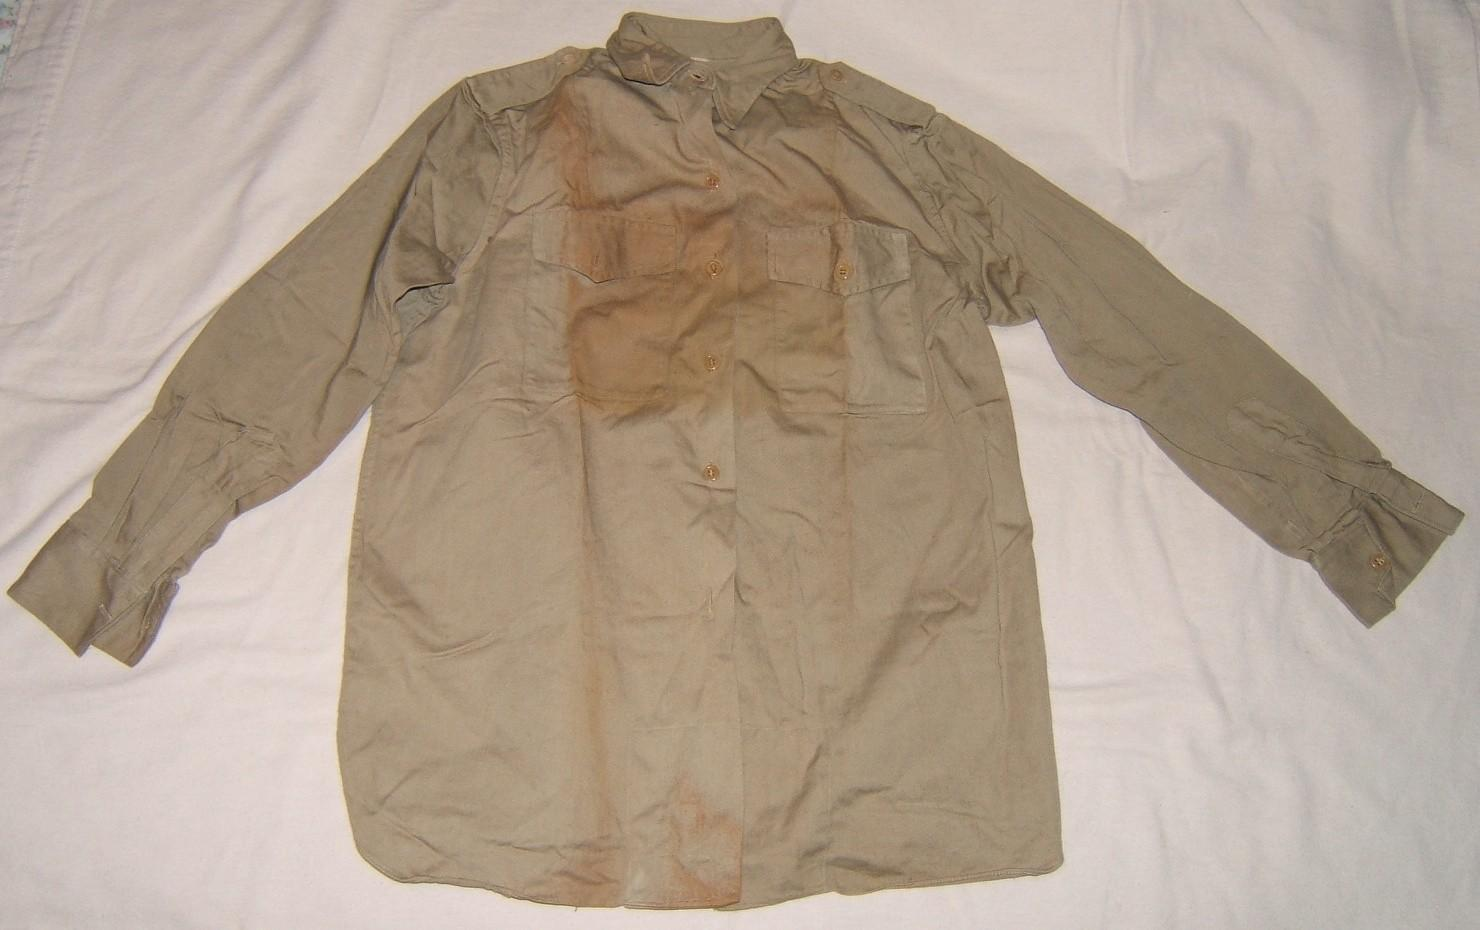 Israeli Army (Israeli-made?) battledress shirt in khaki, 1950